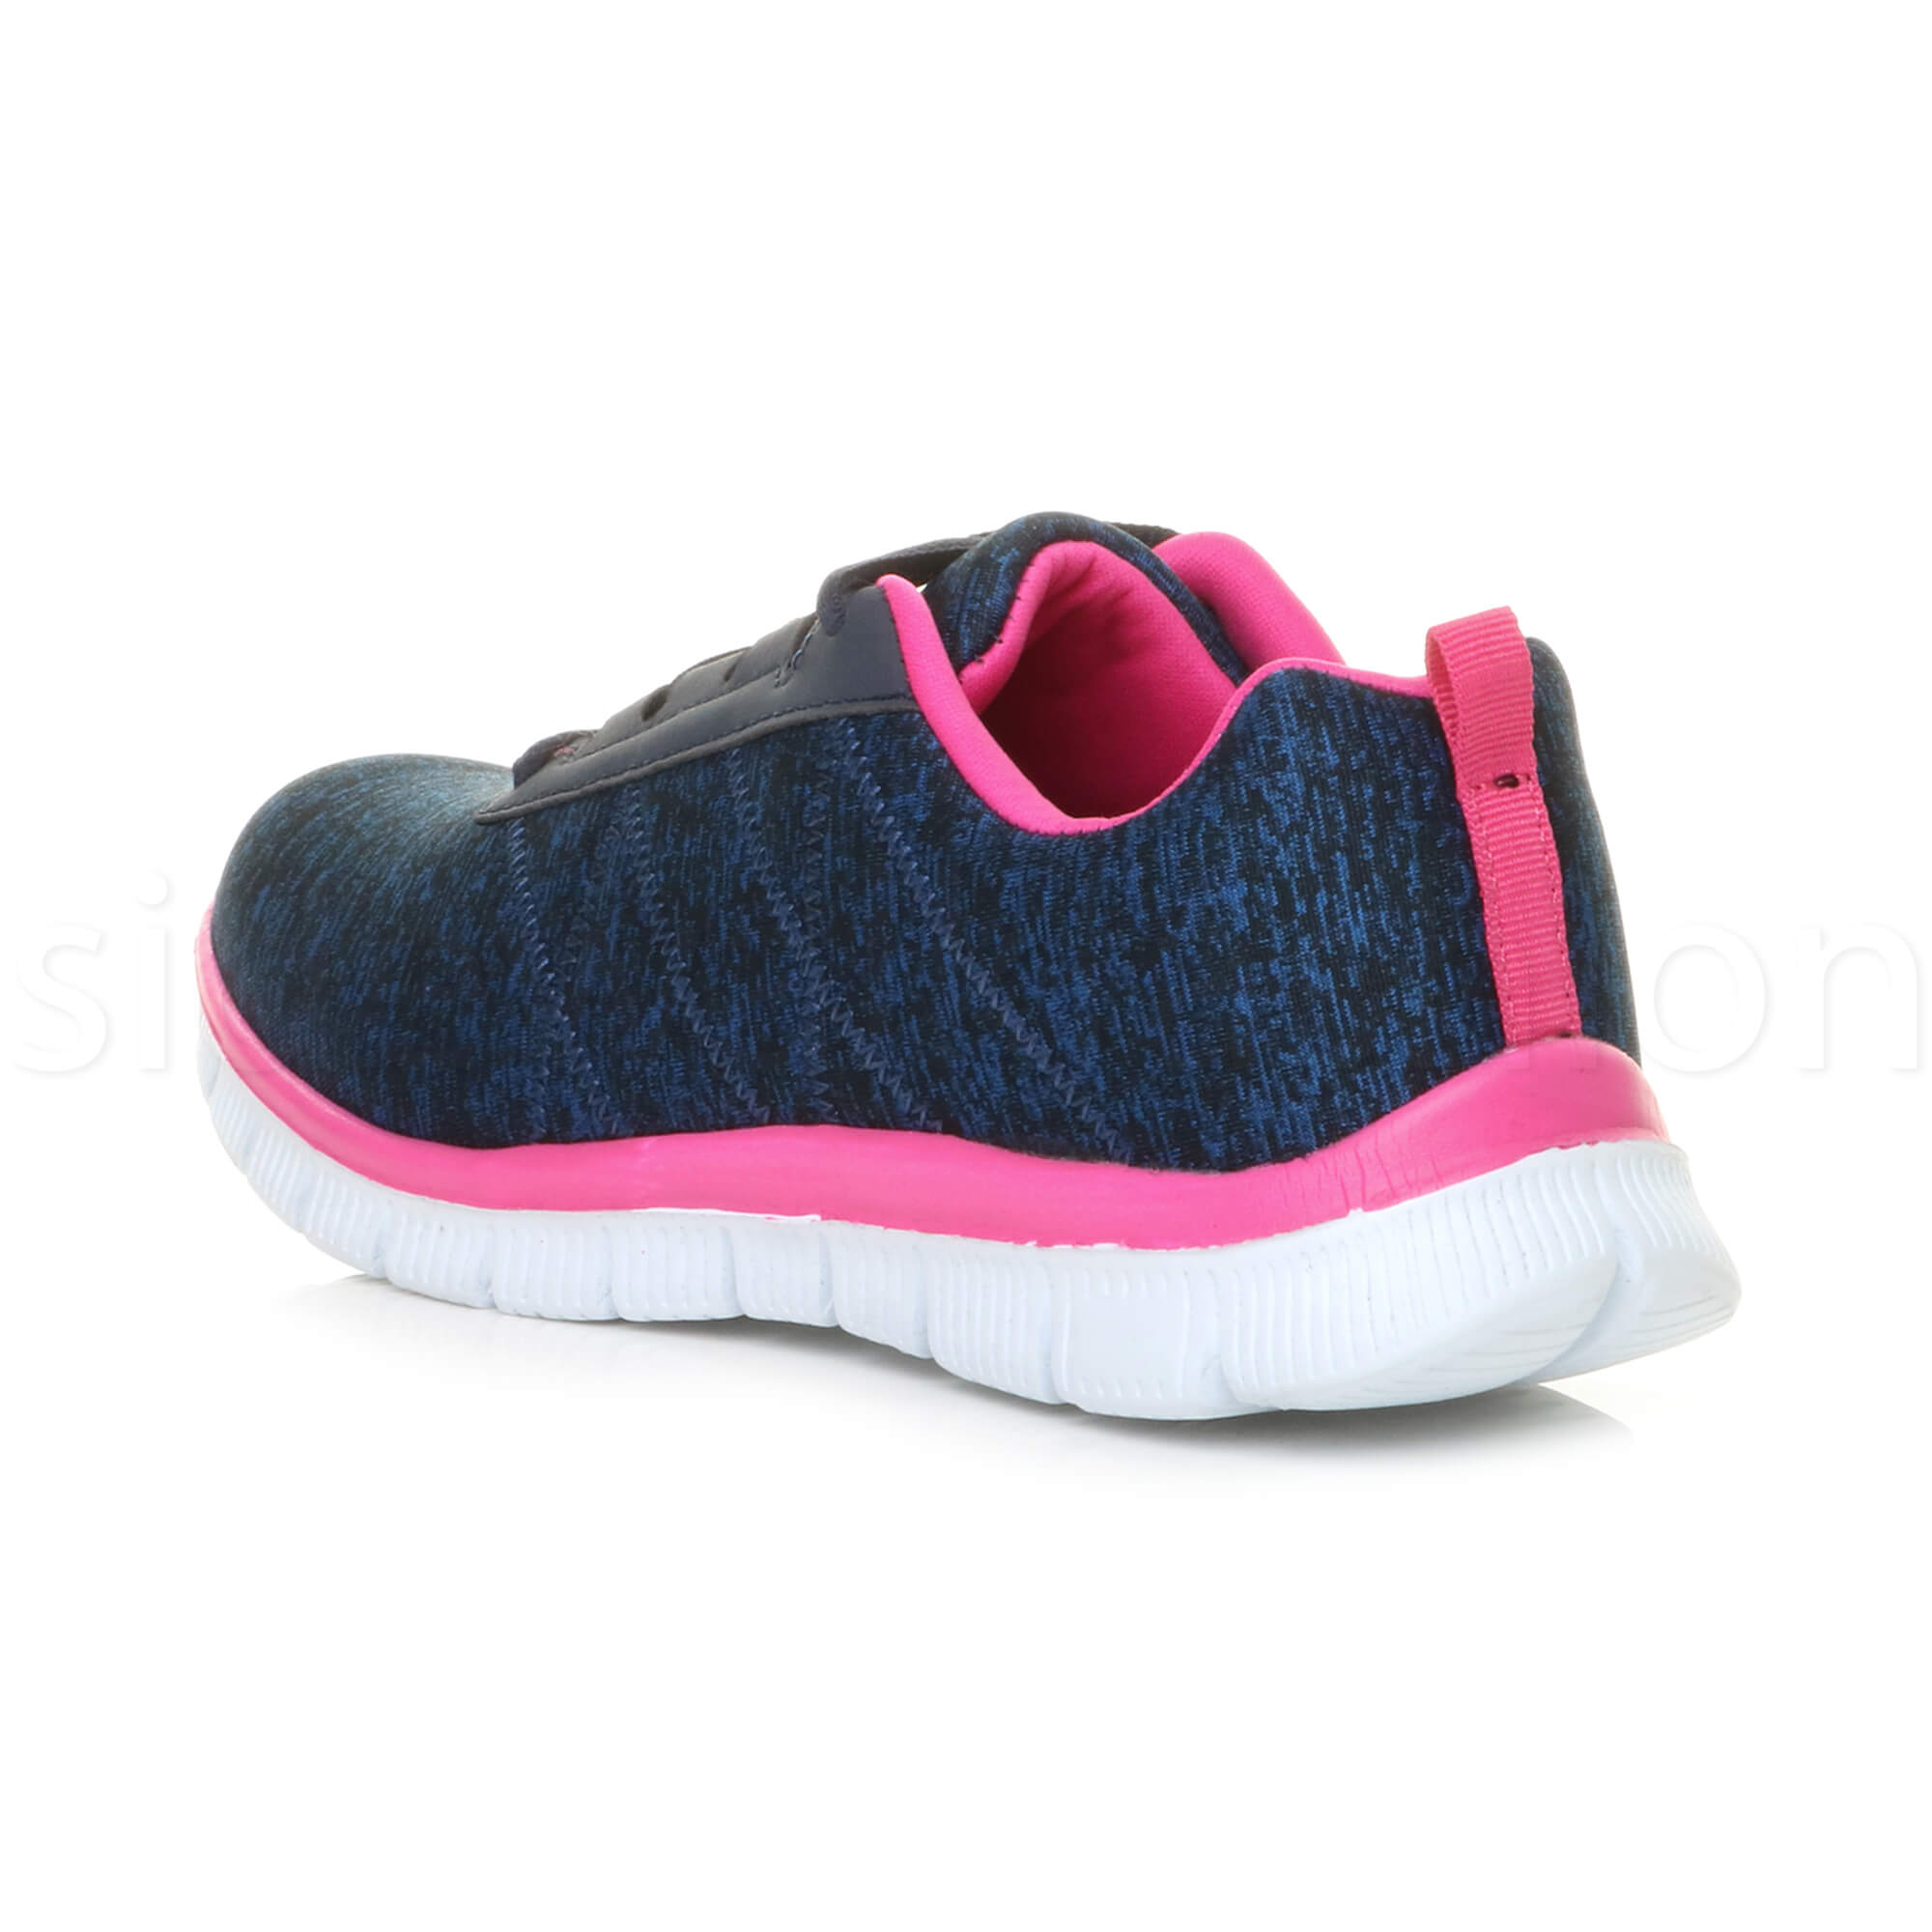 Womens-ladies-comfort-memory-foam-lace-up-trainers-activewear-sneakers-gym-shoes thumbnail 67